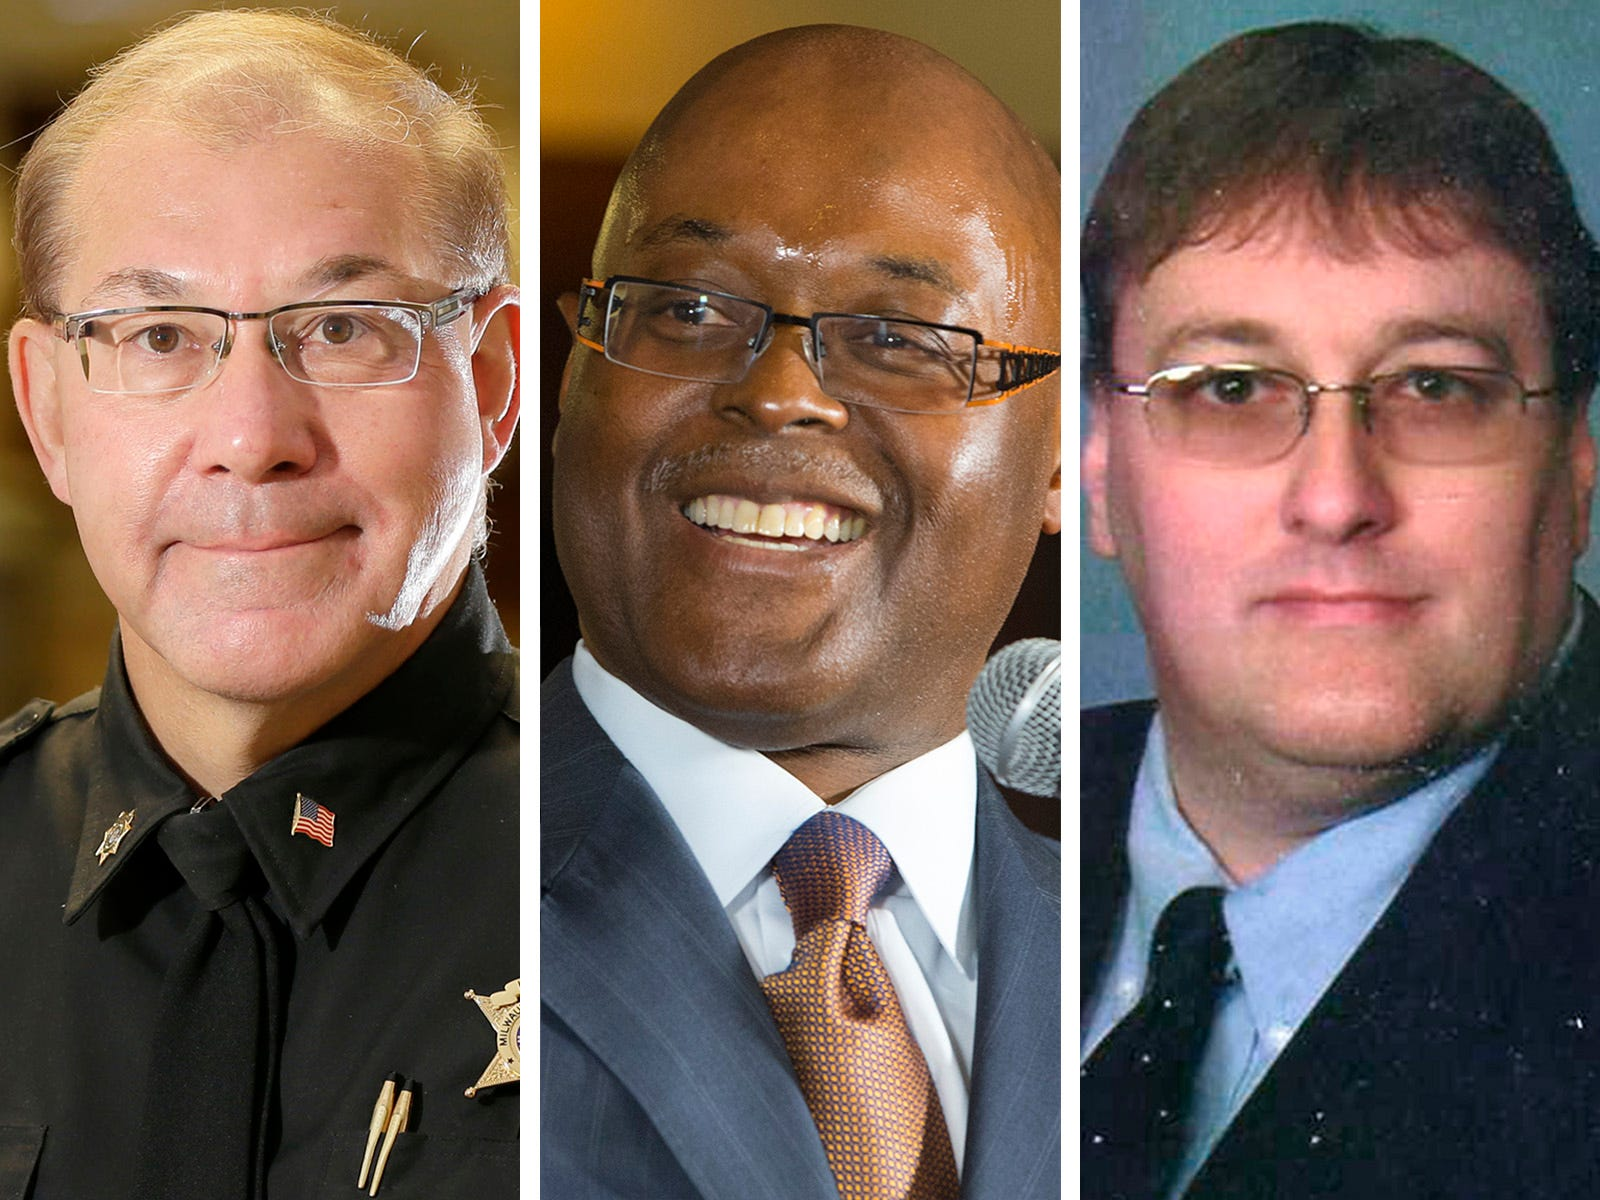 Earnell Lucas builds cash advantage over Richard Schmidt and Robert Ostrowski in Milwaukee County sheriff's race | Milwaukee Journal Sentinel